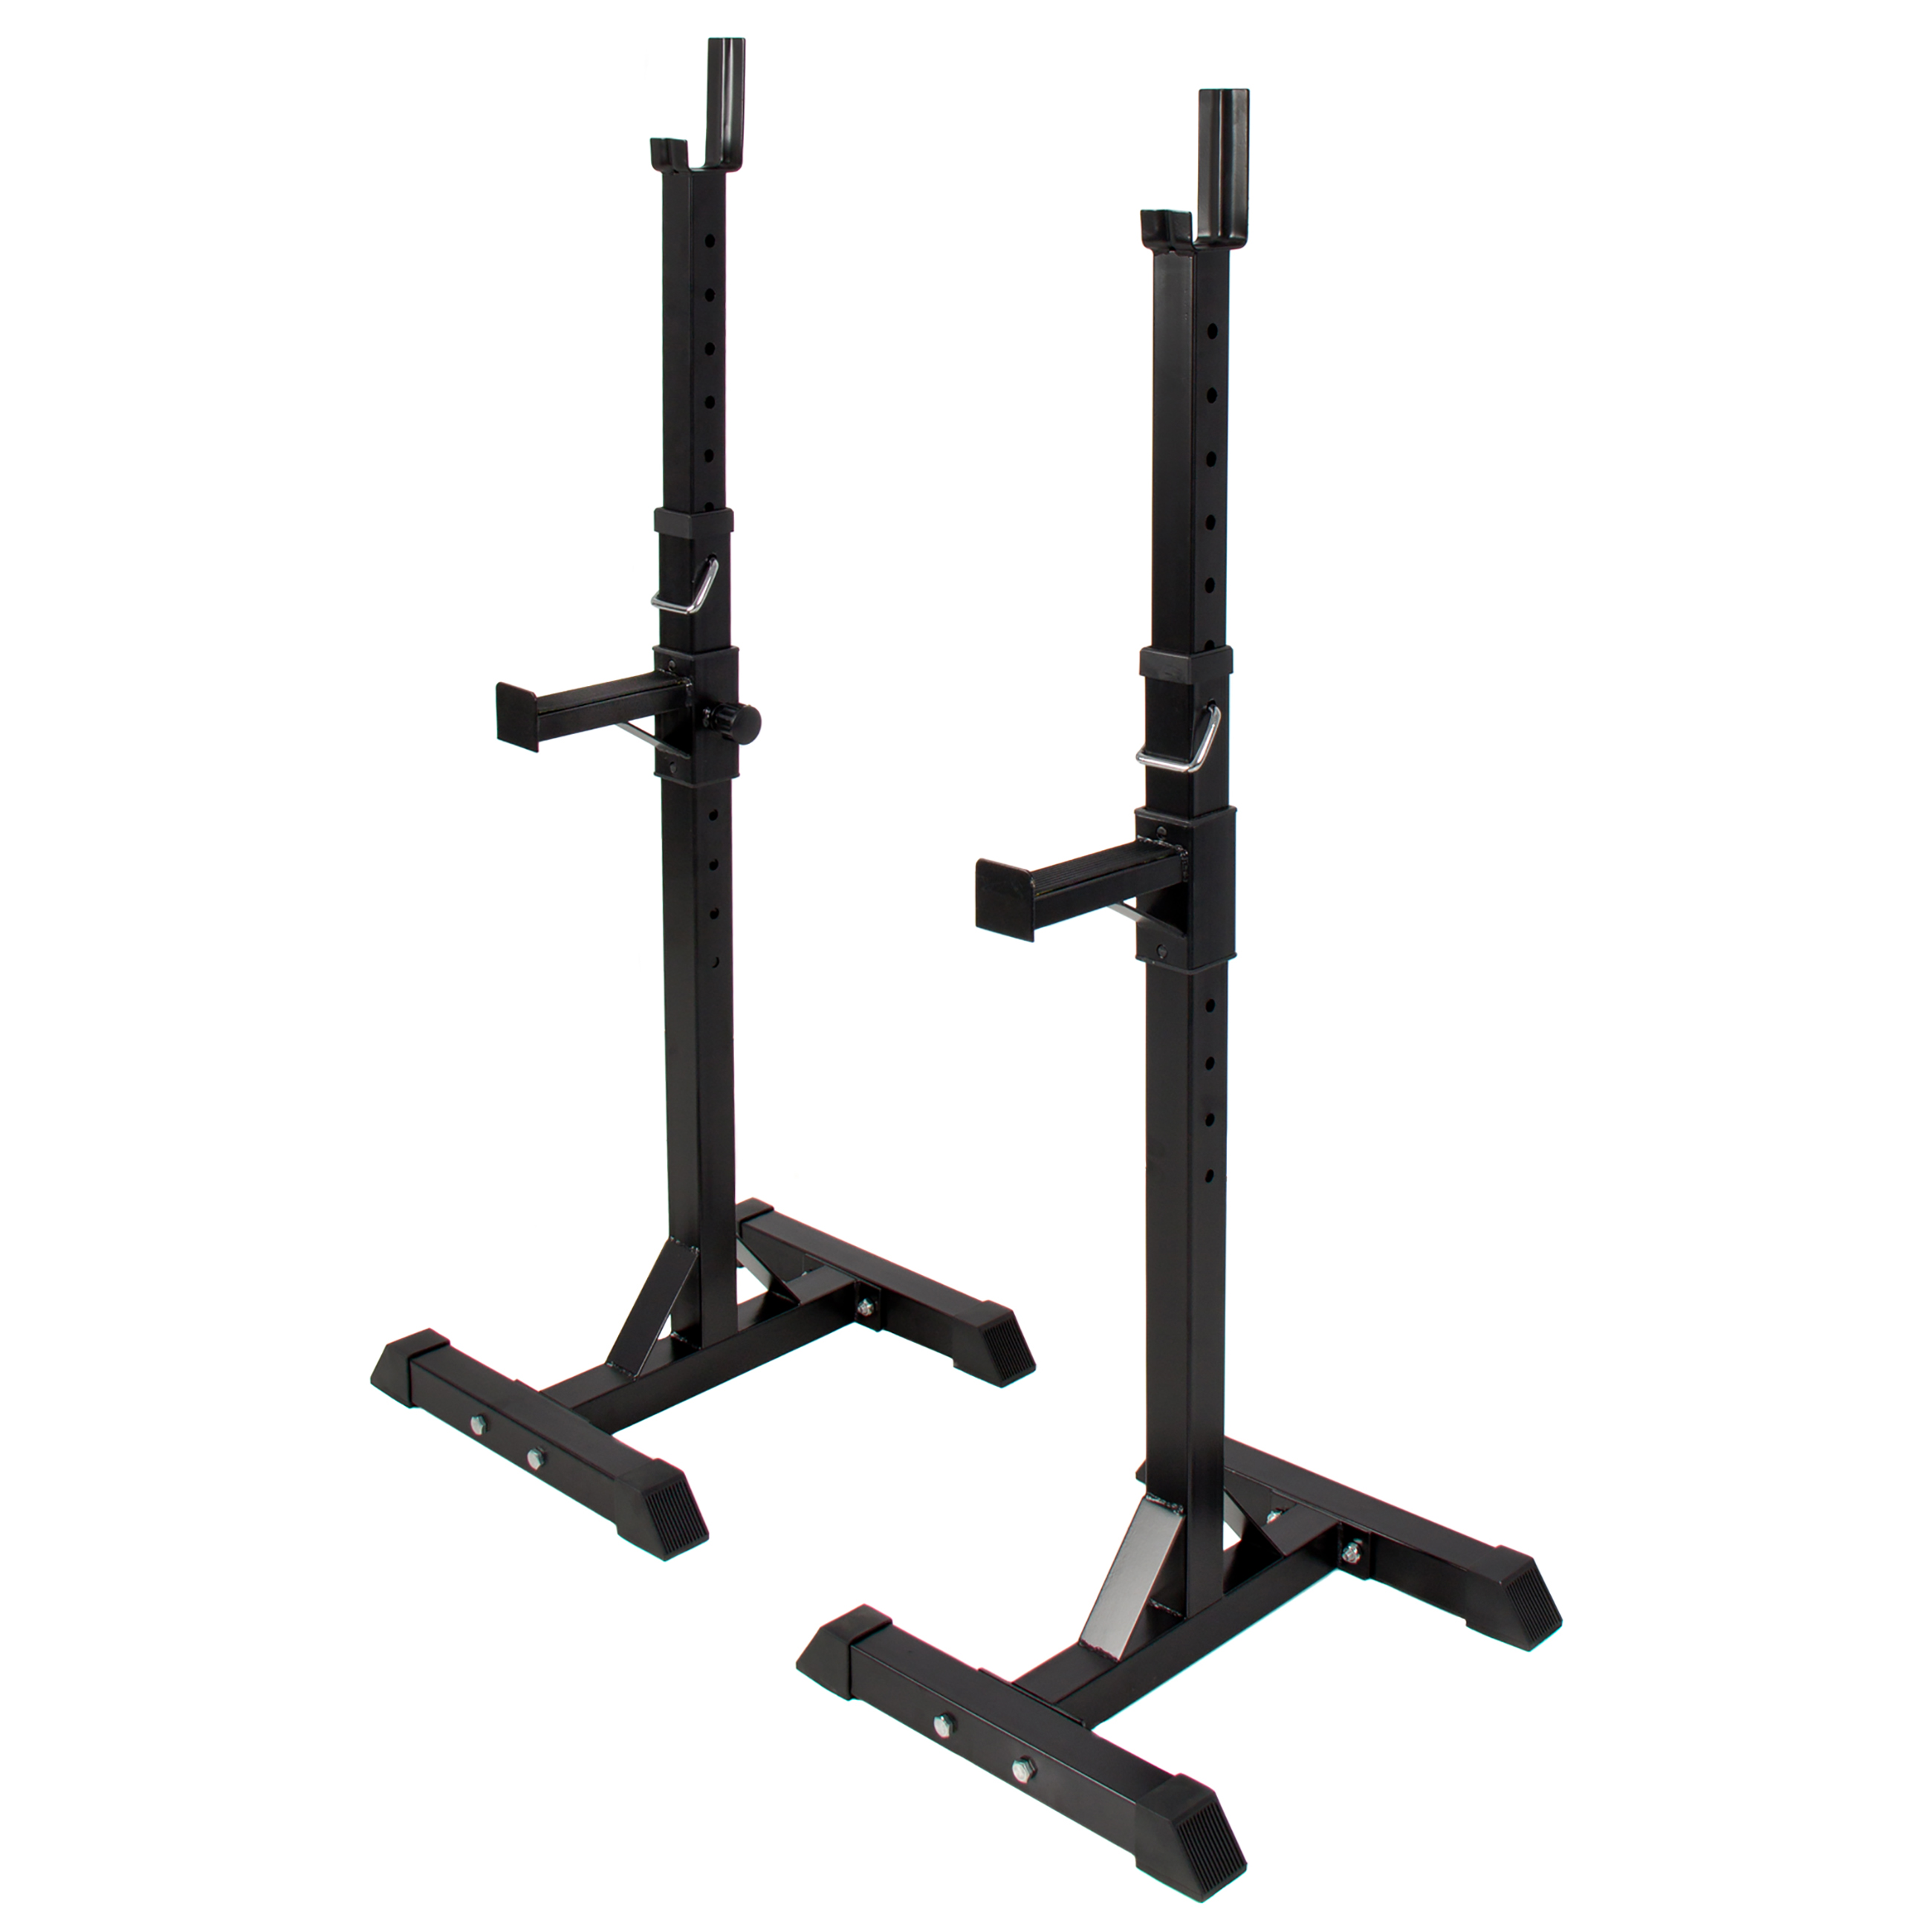 Best Choice Products 2-Piece Adjustable Standard Steel Barbell Rack Black by Best Choice Products